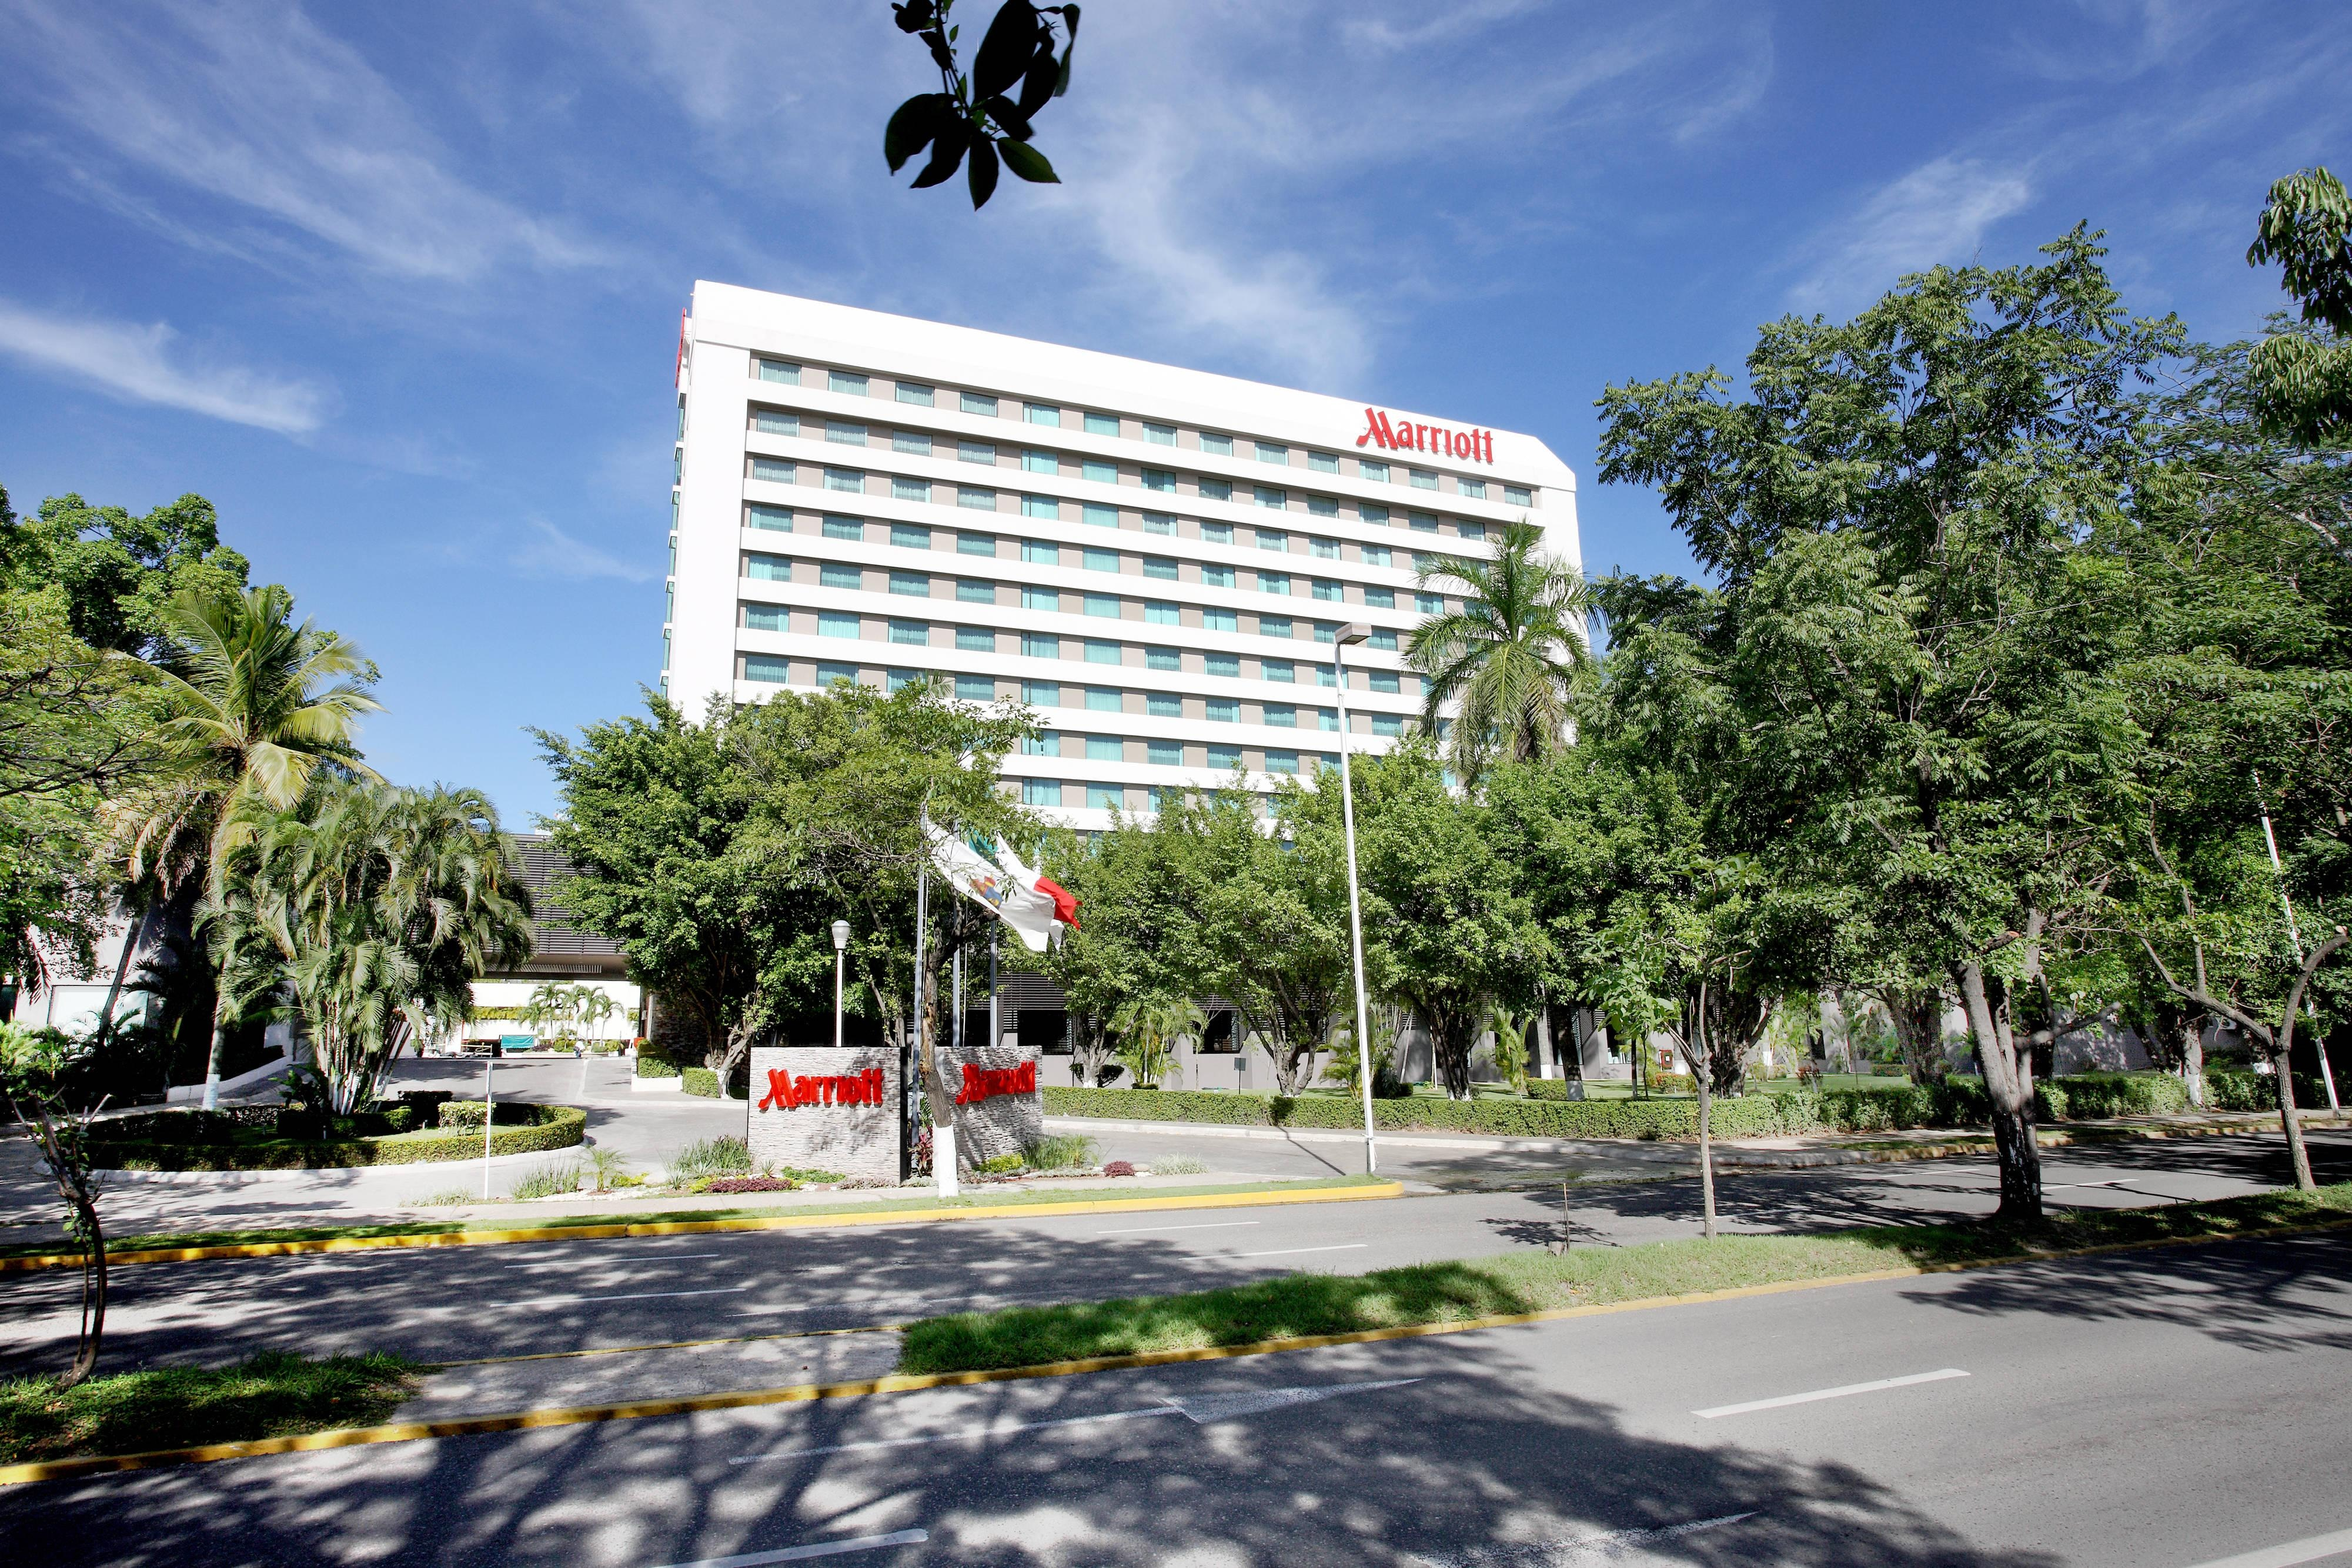 Hotel Marriott en Villahermosa